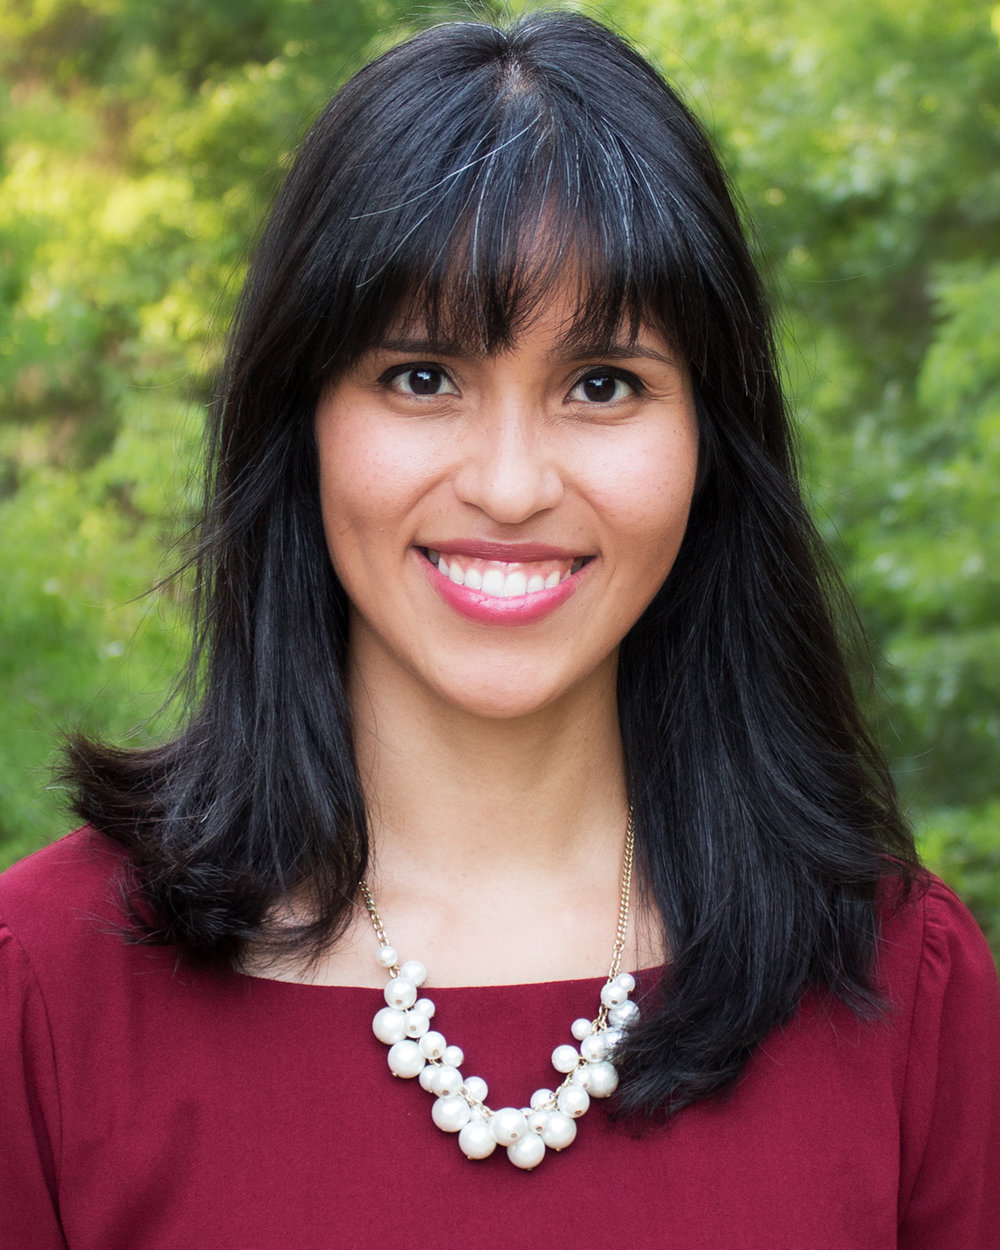 Karina Gutierrez, M.S., LPC-Intern, Under the Supervision of Dr. Ryan Holliman, LPC-S - Licensed Professional Counselor - InternGottman Level 2 TrainedBilingual - Spanish/EnglishTrauma-Focused CBT TrainedDBT TrainedInsurance: n/aPrivate Pay RateLocation: Denton, Texas